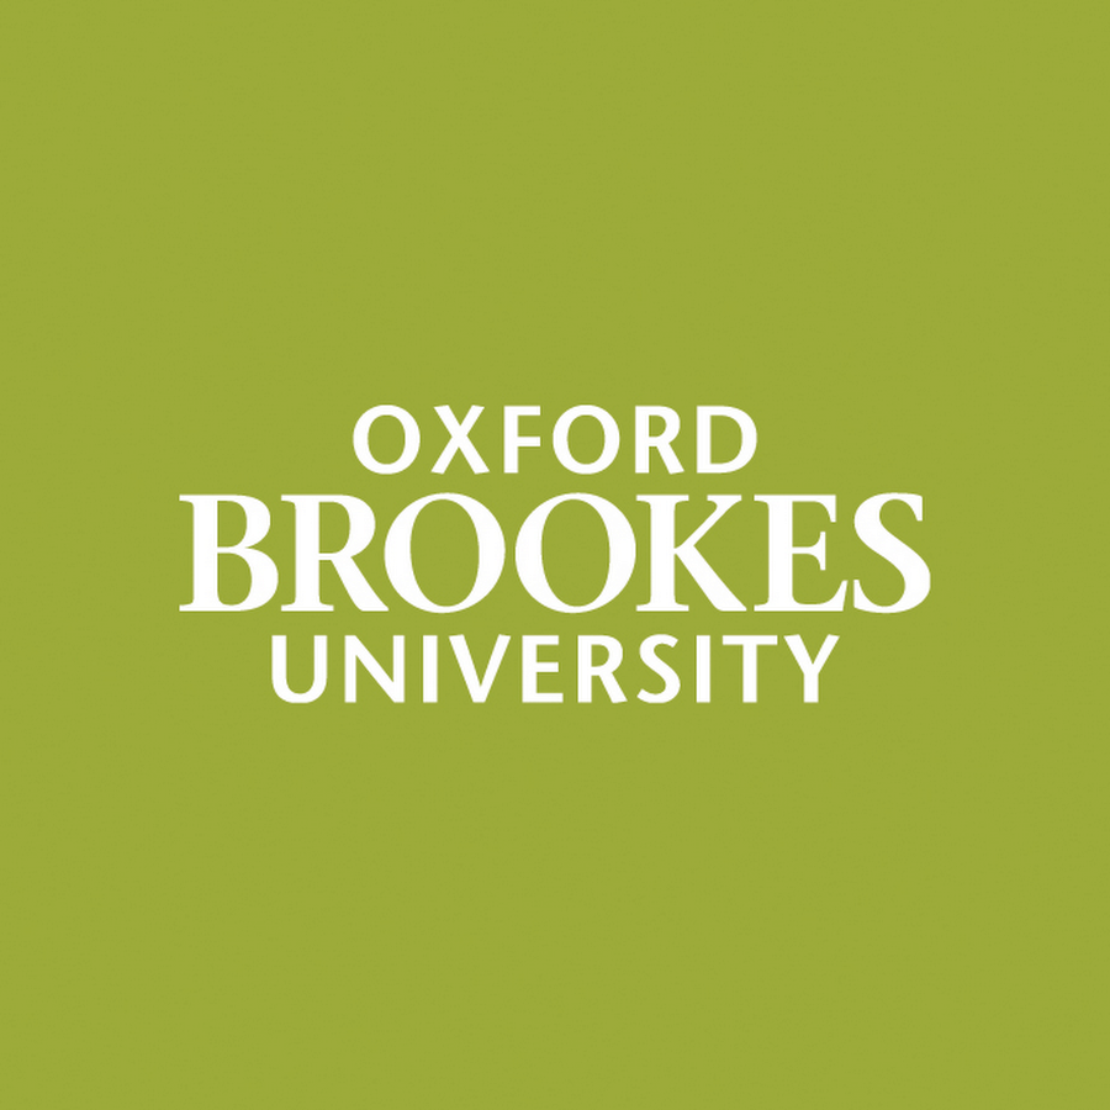 Visiting Professor of Oxford Brookes University